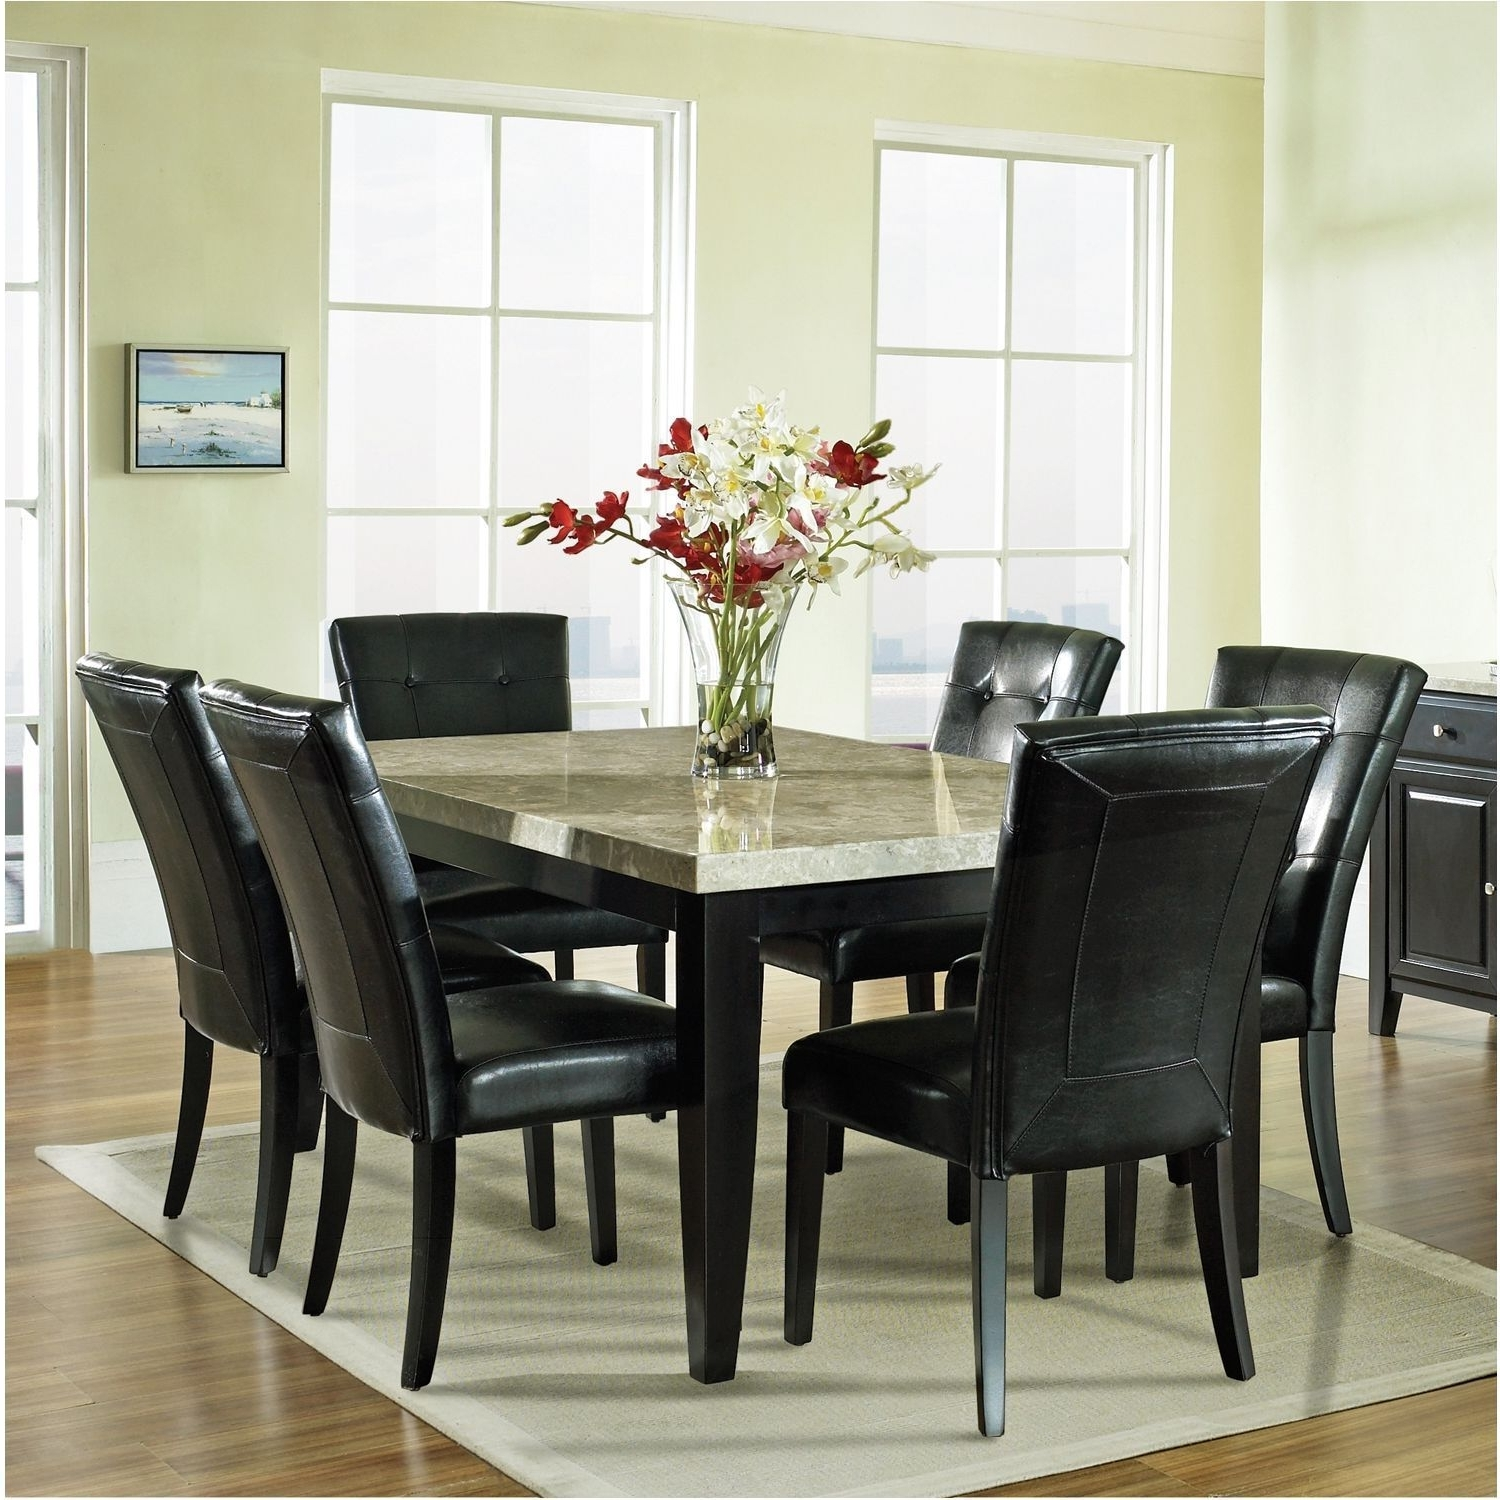 Dining Sets With Regard To Cora 7 Piece Dining Sets (View 12 of 25)